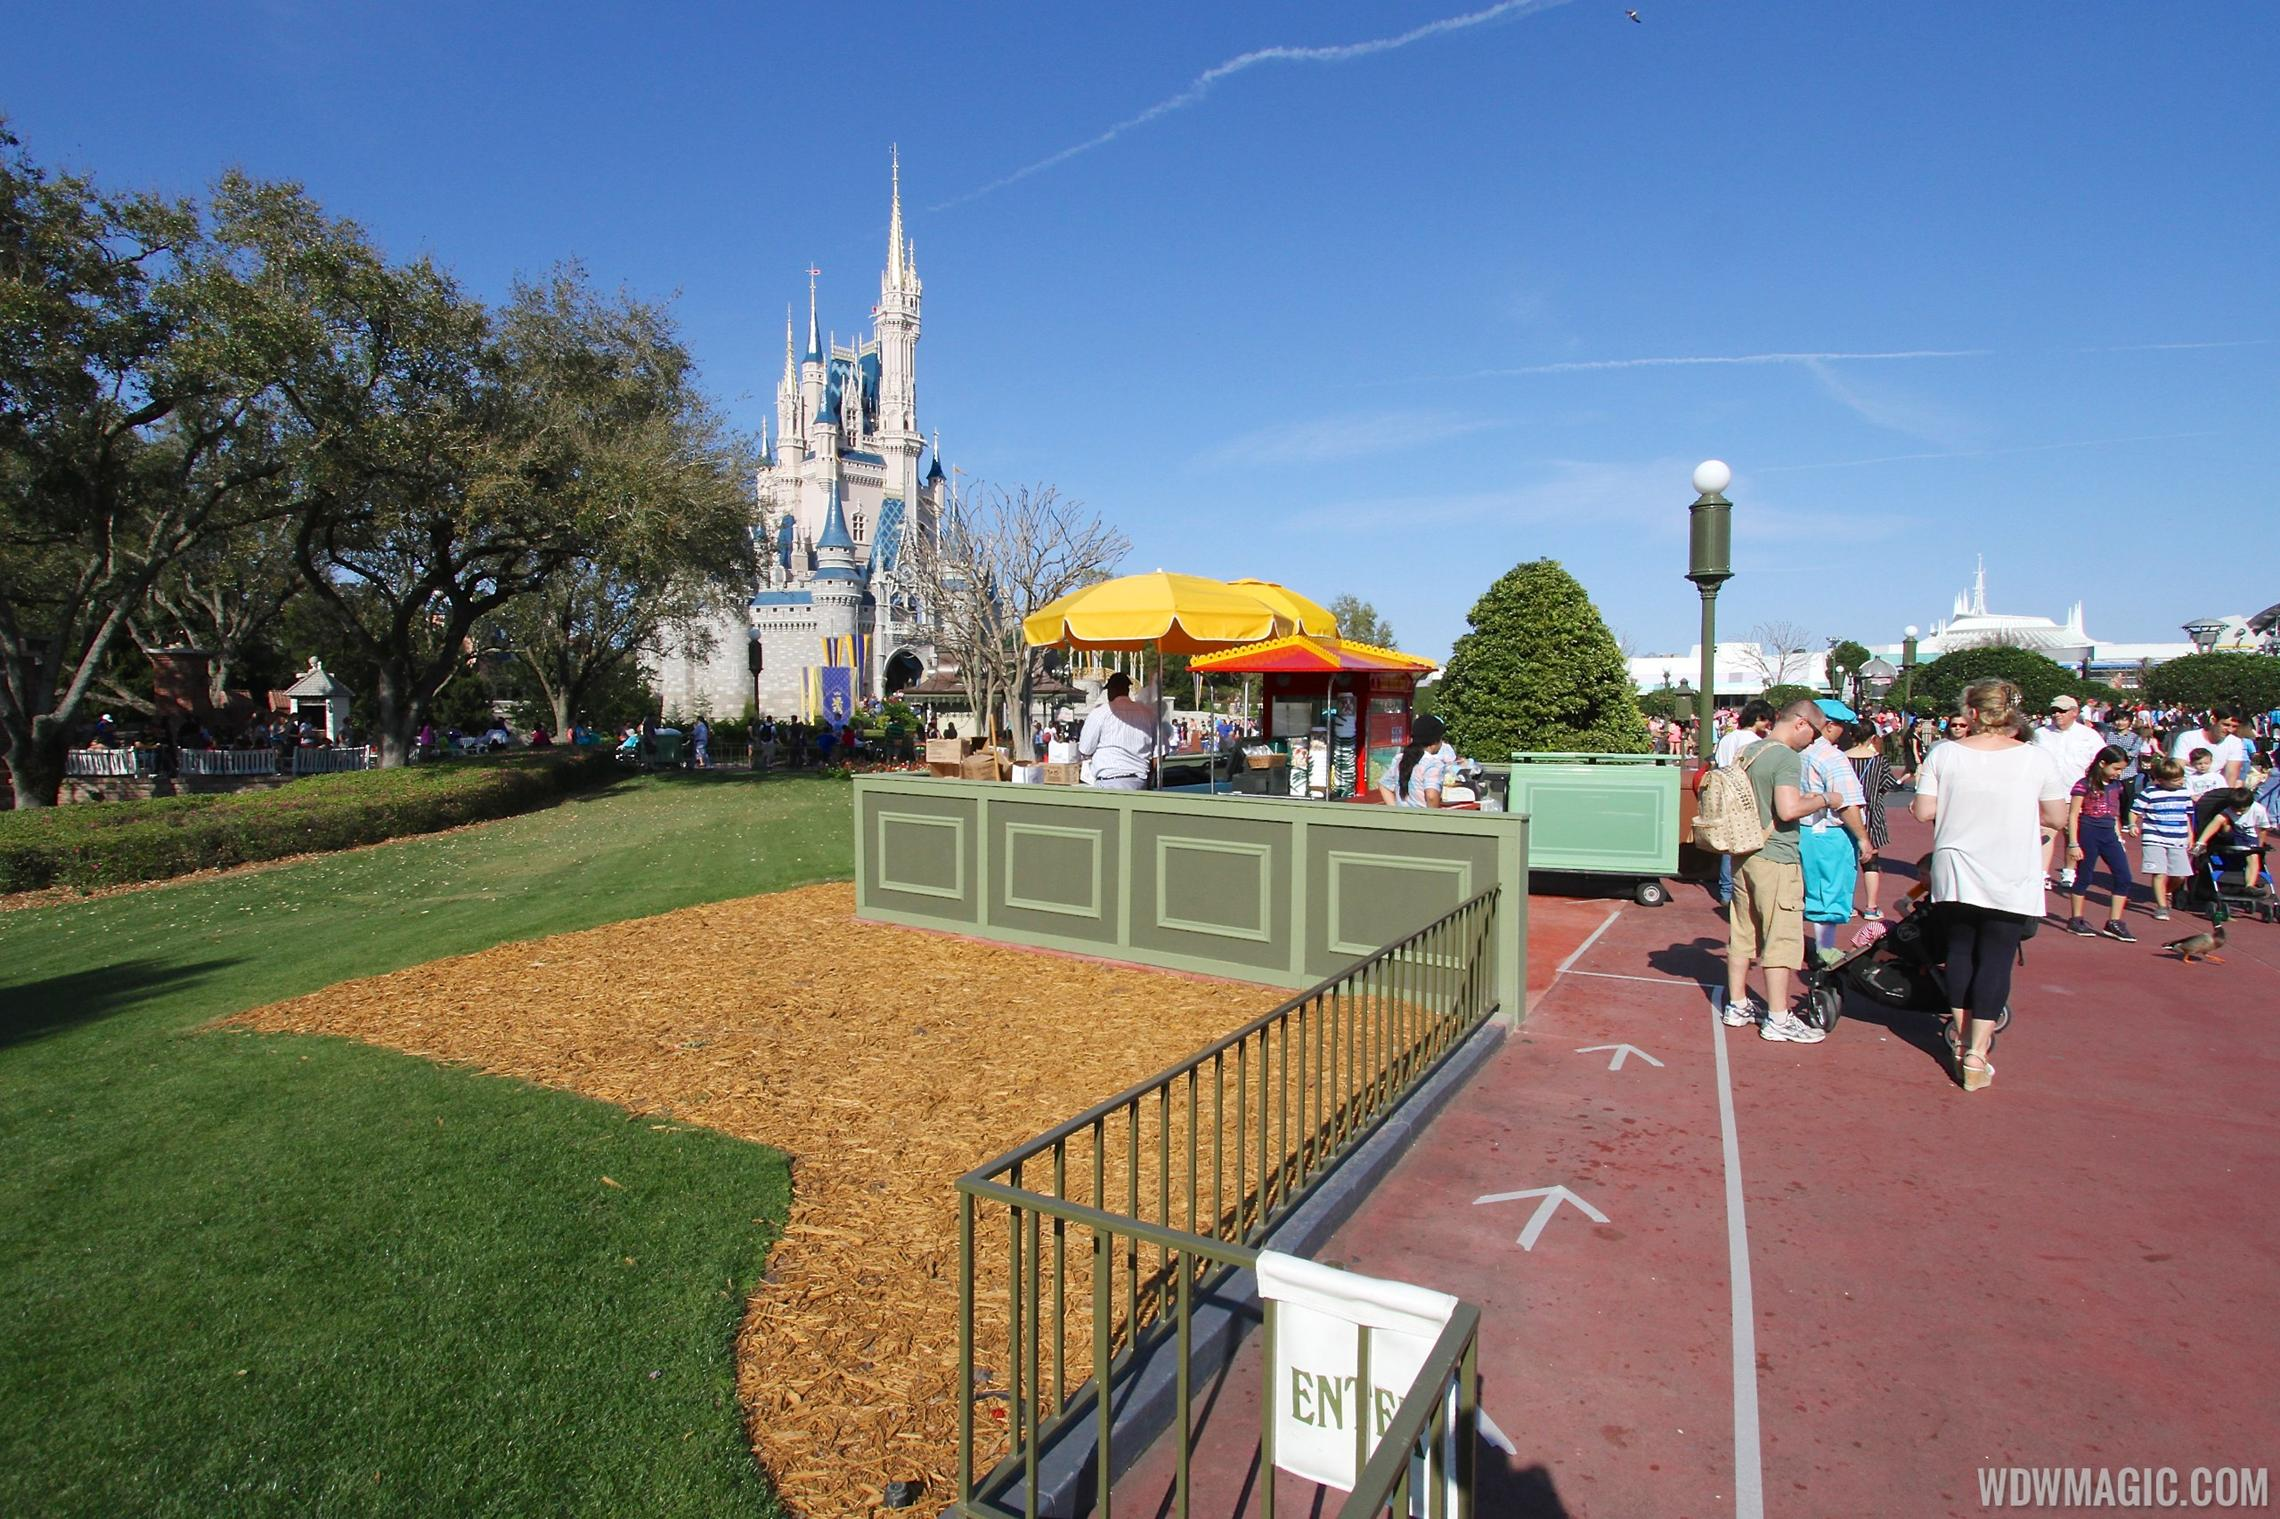 Temporary kiosks are now in operation